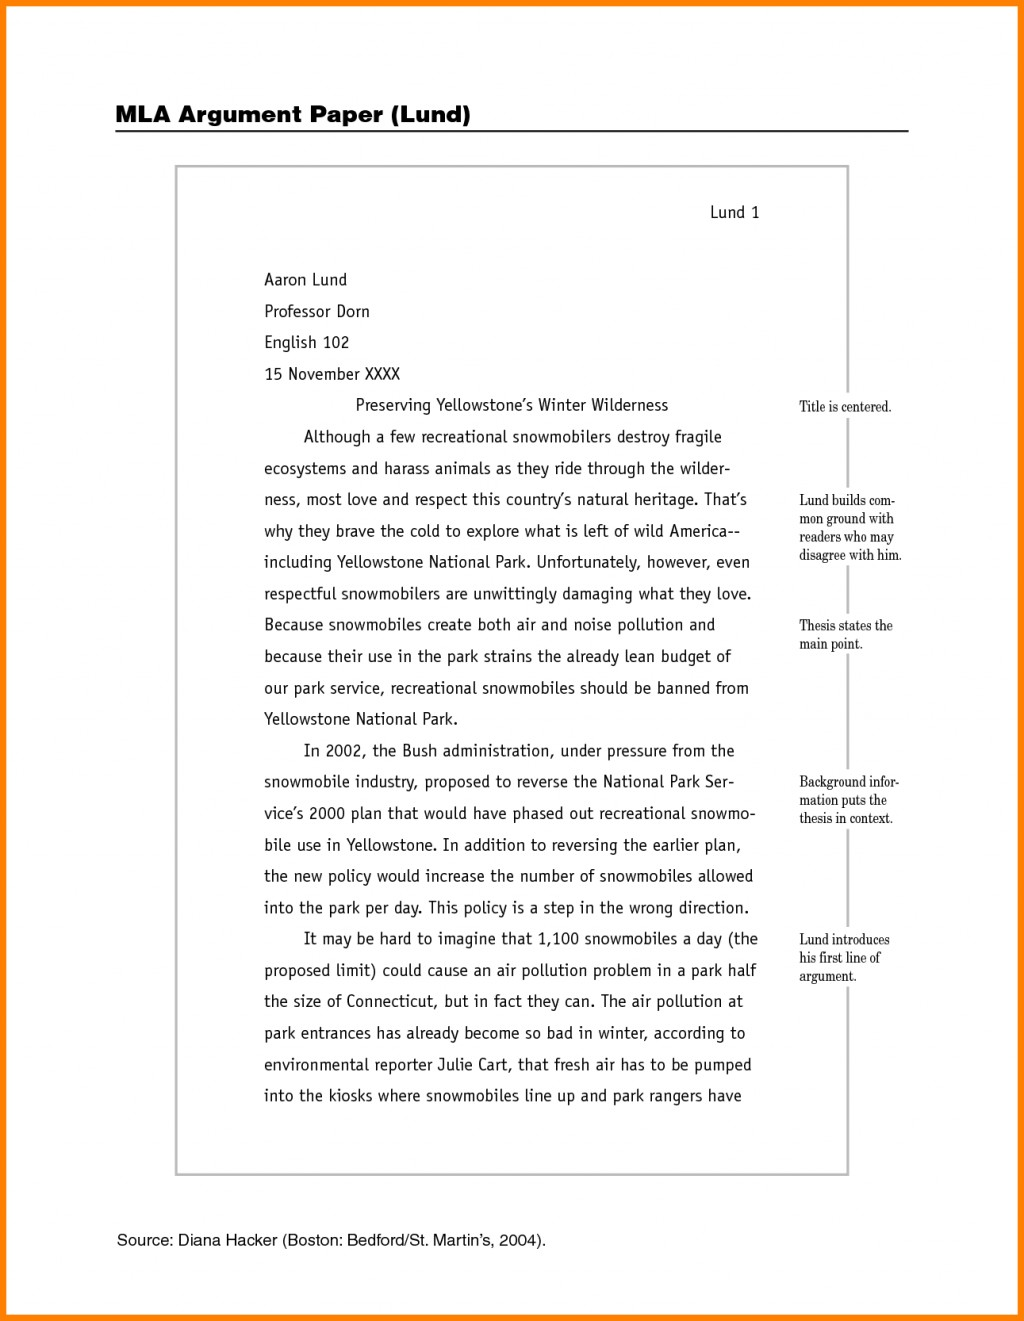 009 How To Write Research Paper Sample What Is Mla Format For Essays Essay Unique Proper An 8 Example Large